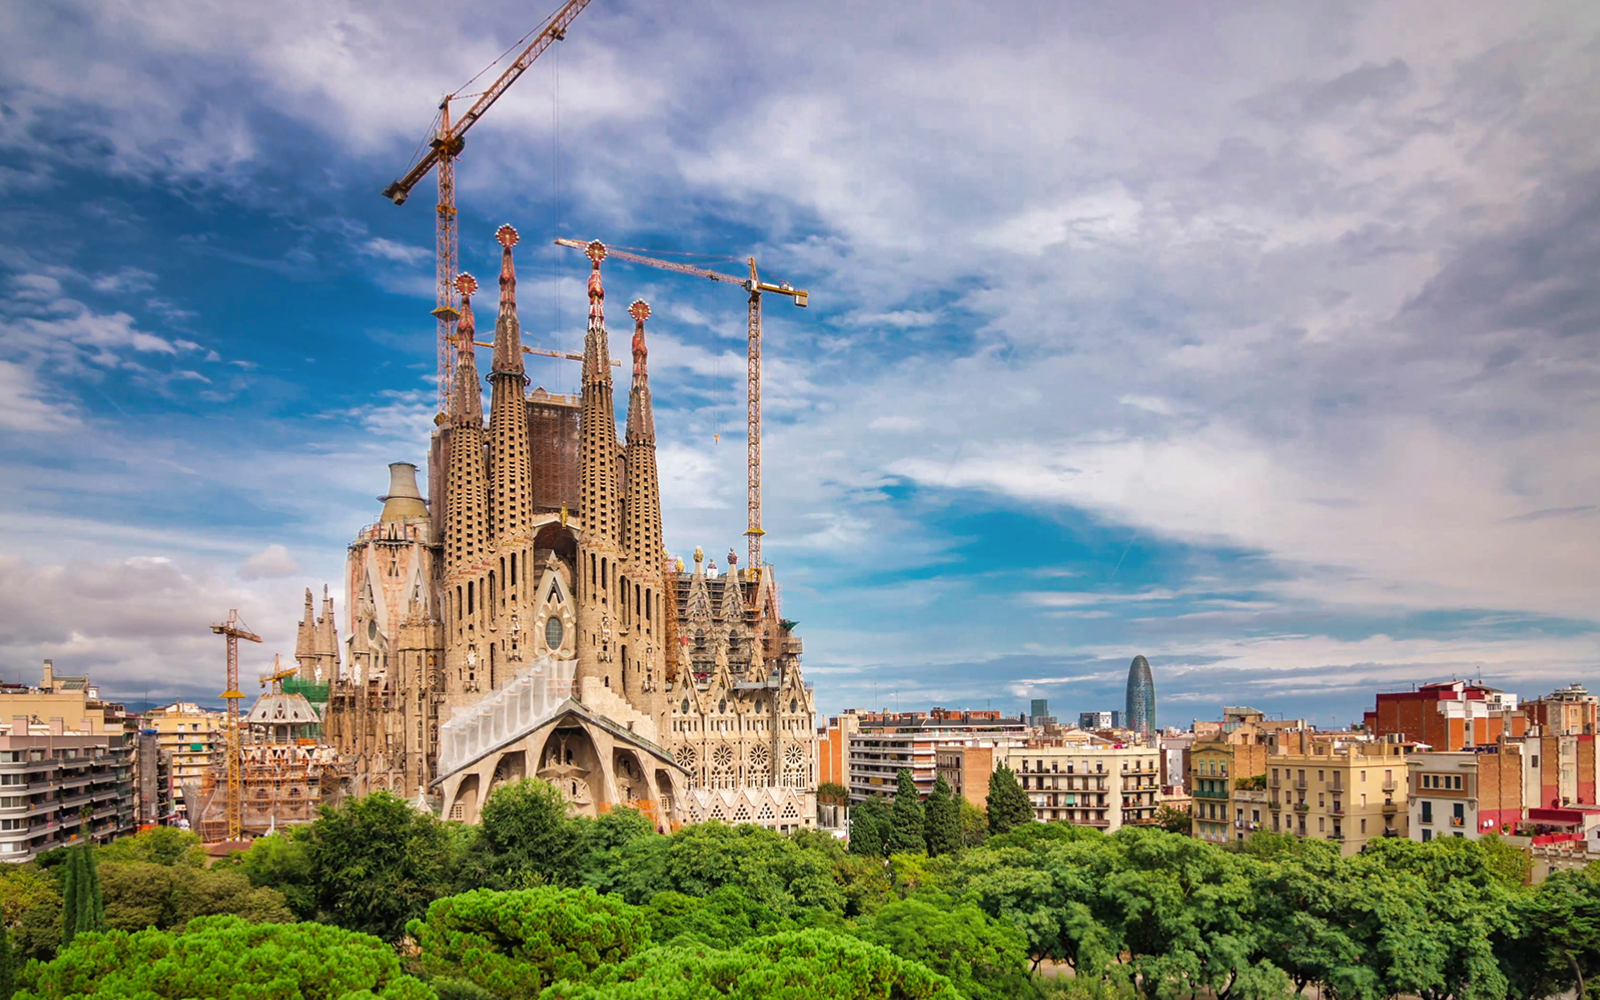 87b70e24 4bdd 4a63 bd76 b35e234d9903 9497 barcelona fast track guided tour to sagrada familia with towers access 01